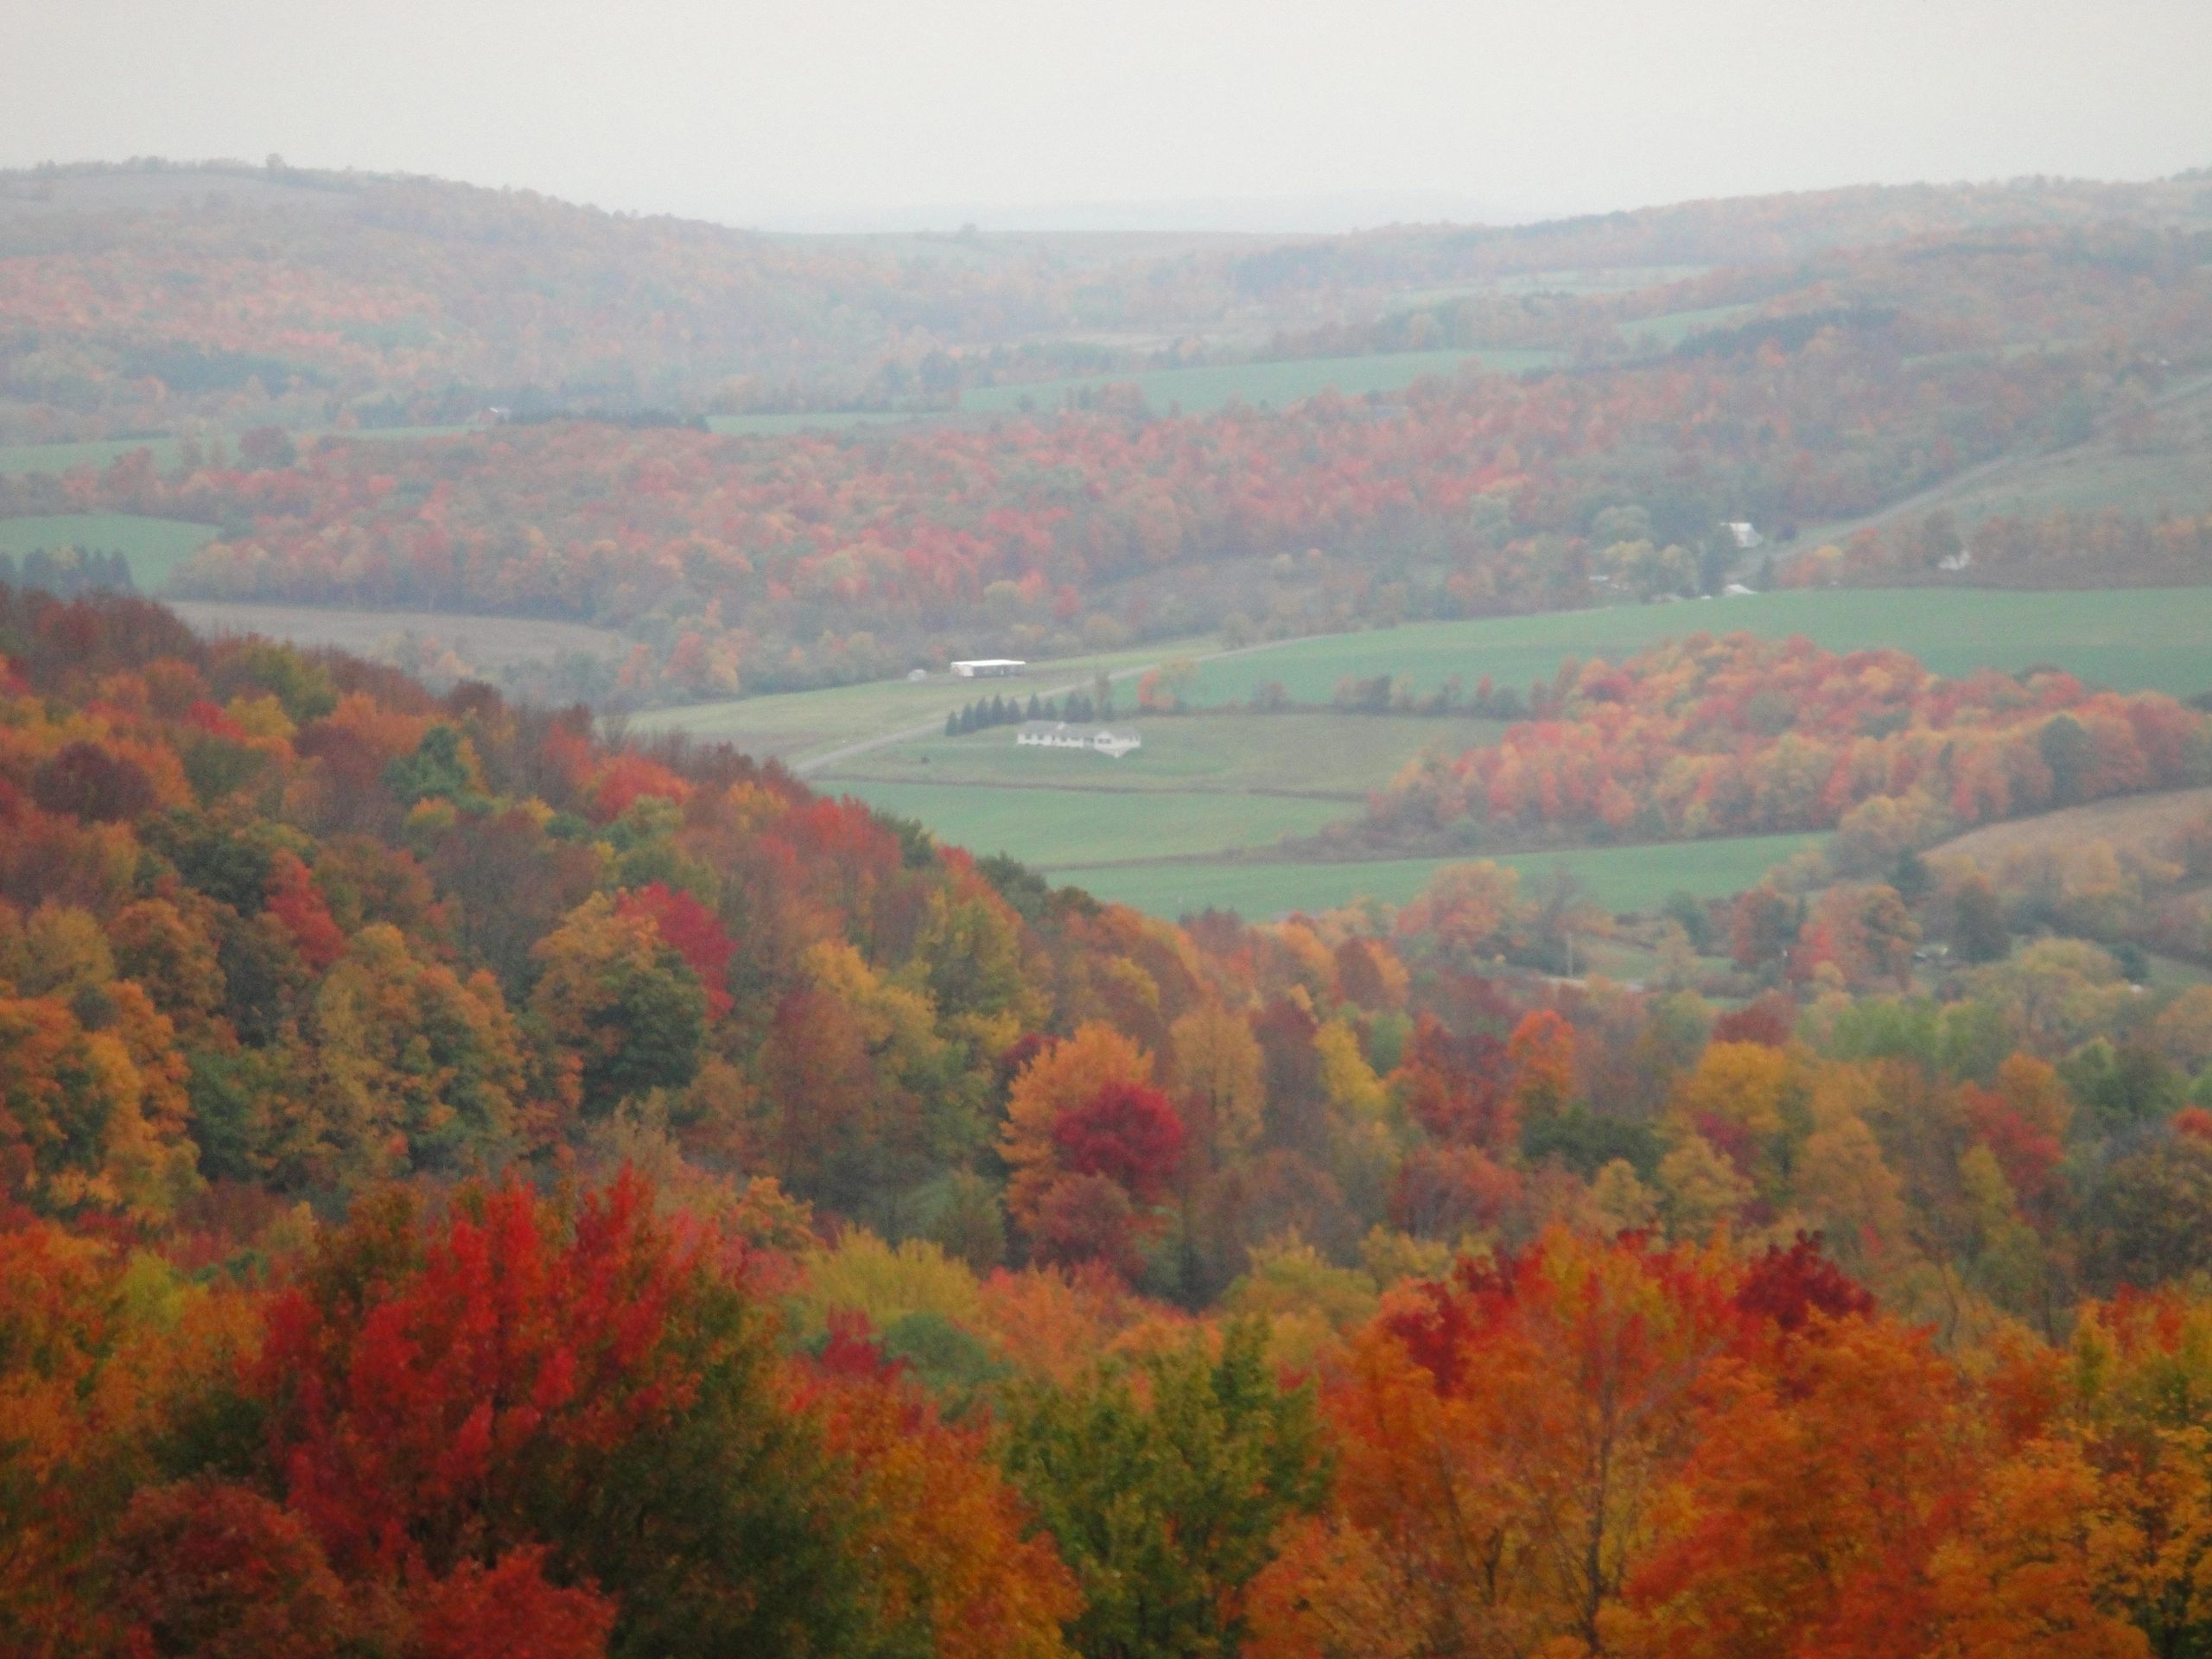 Fall scene over looking Virgil Valley. Taken from Van Donsel Road. Photo credit Marsha Powell